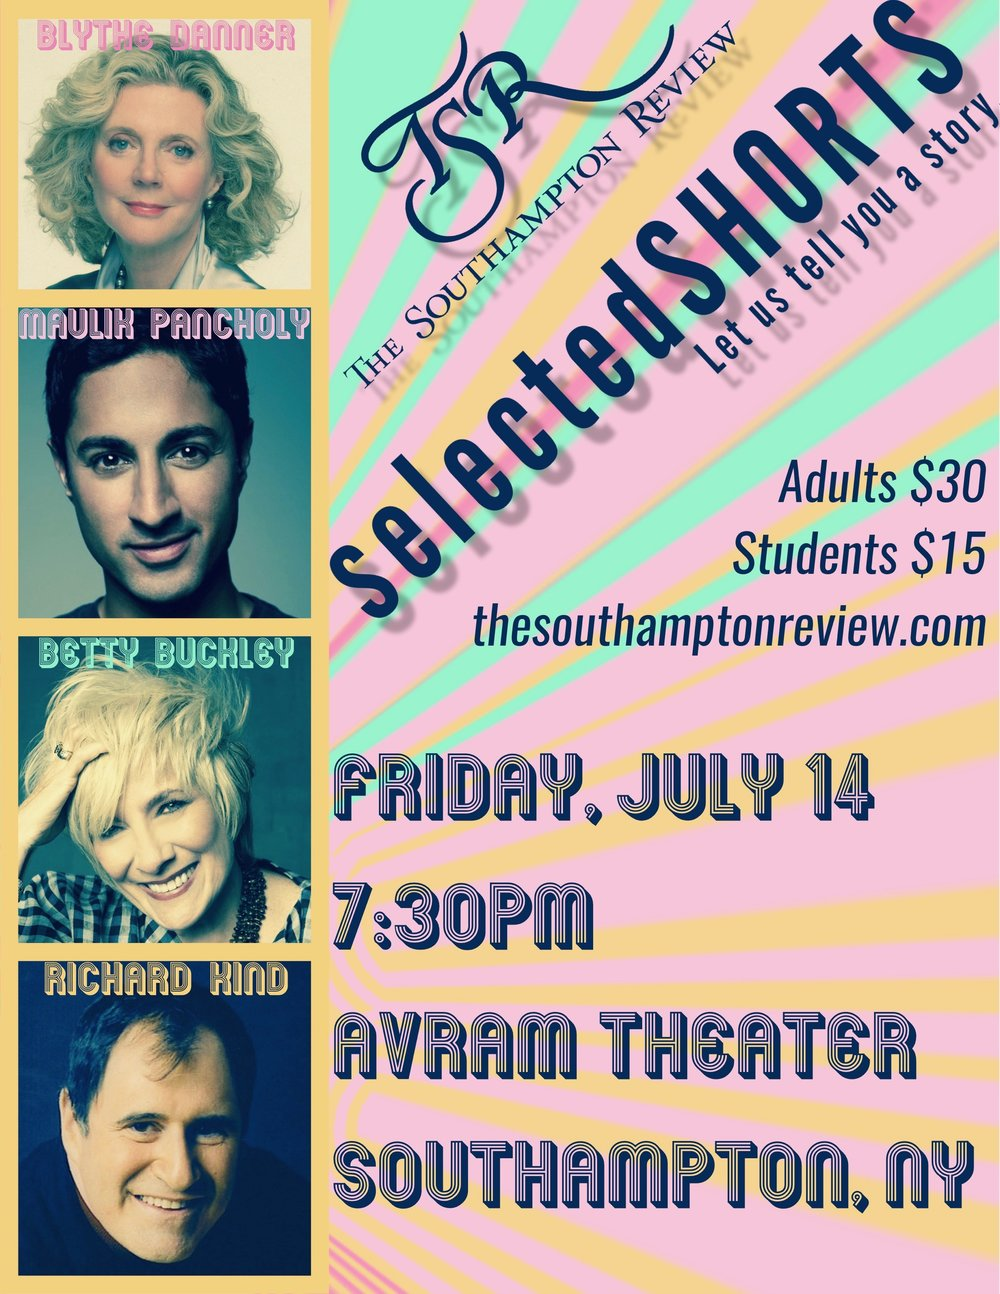 Summer/Fall 2017 Issue Launch with Selected Shorts Maulik Pancholy, Blythe Danner, Richard Kind, Betty Buckley, and Editor-in-Chief Lou Ann Walker on stage at Avram Theater in Southampton, New York. (July 14, 2017)